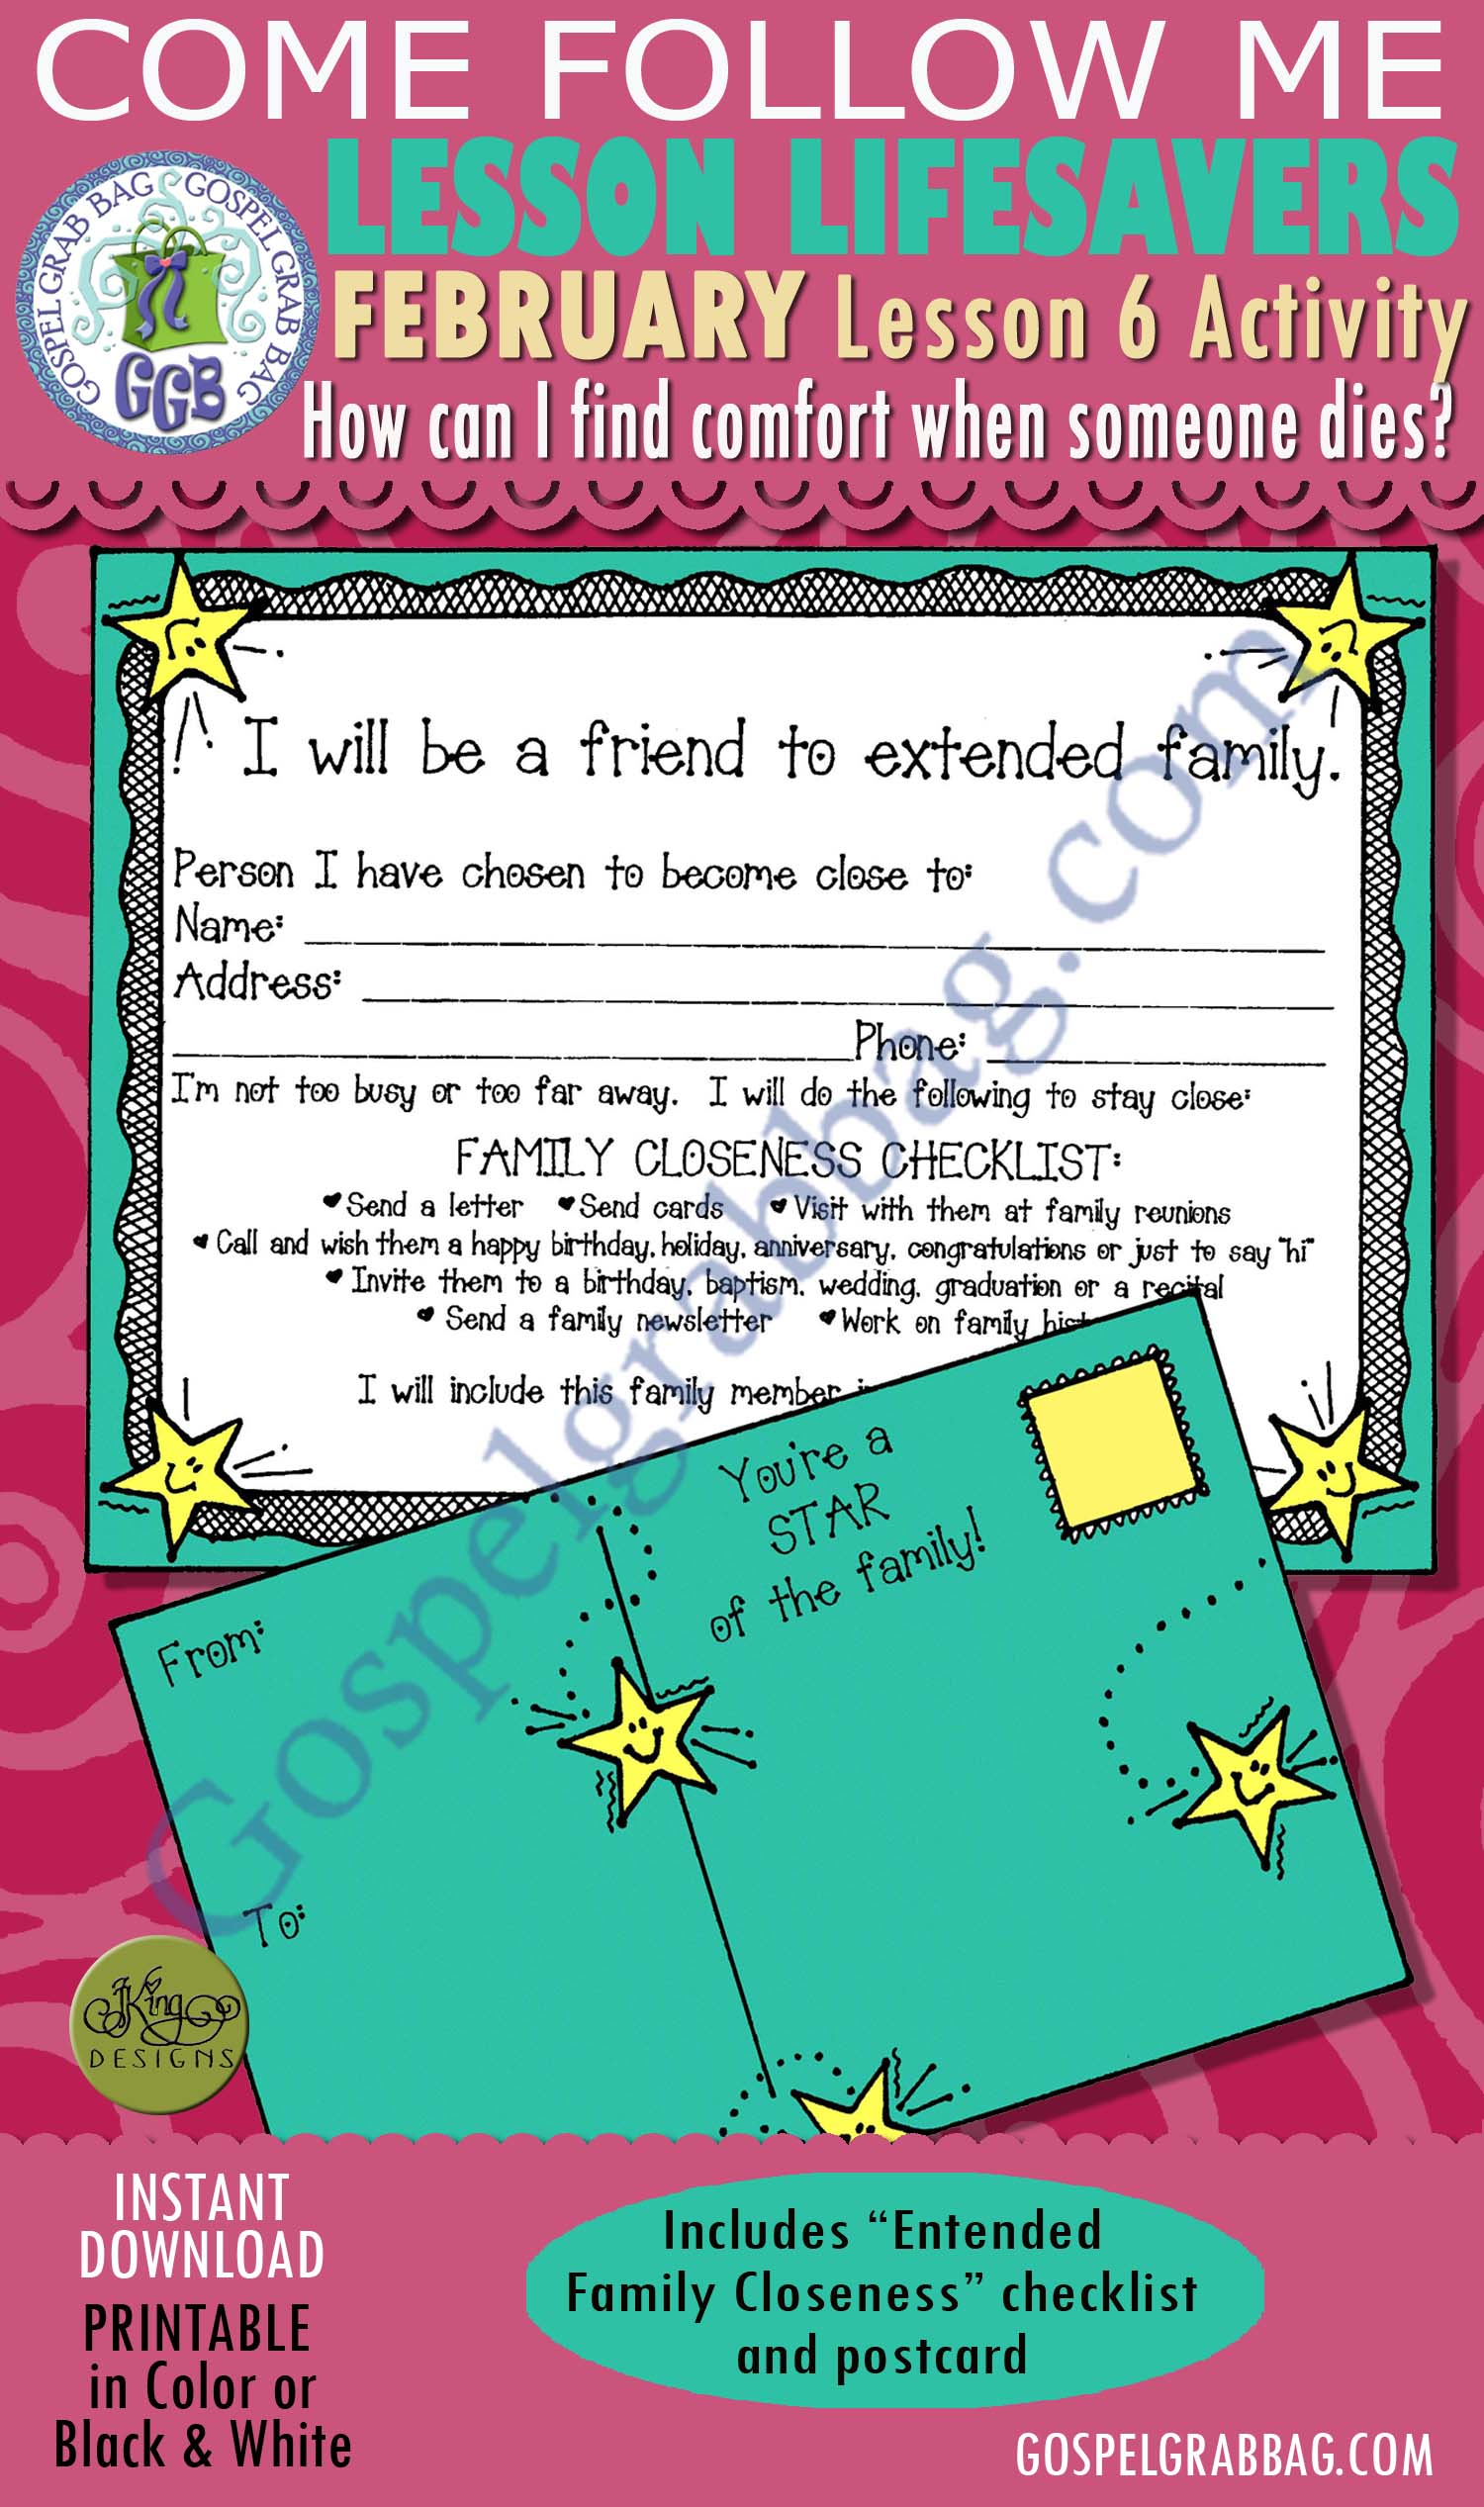 "$1.75 February Lesson 6 Come Follow Me ""How can I find comfort when someone I care about dies?"" ACTIVITY: Extended Family Closeness checklist and postcard"